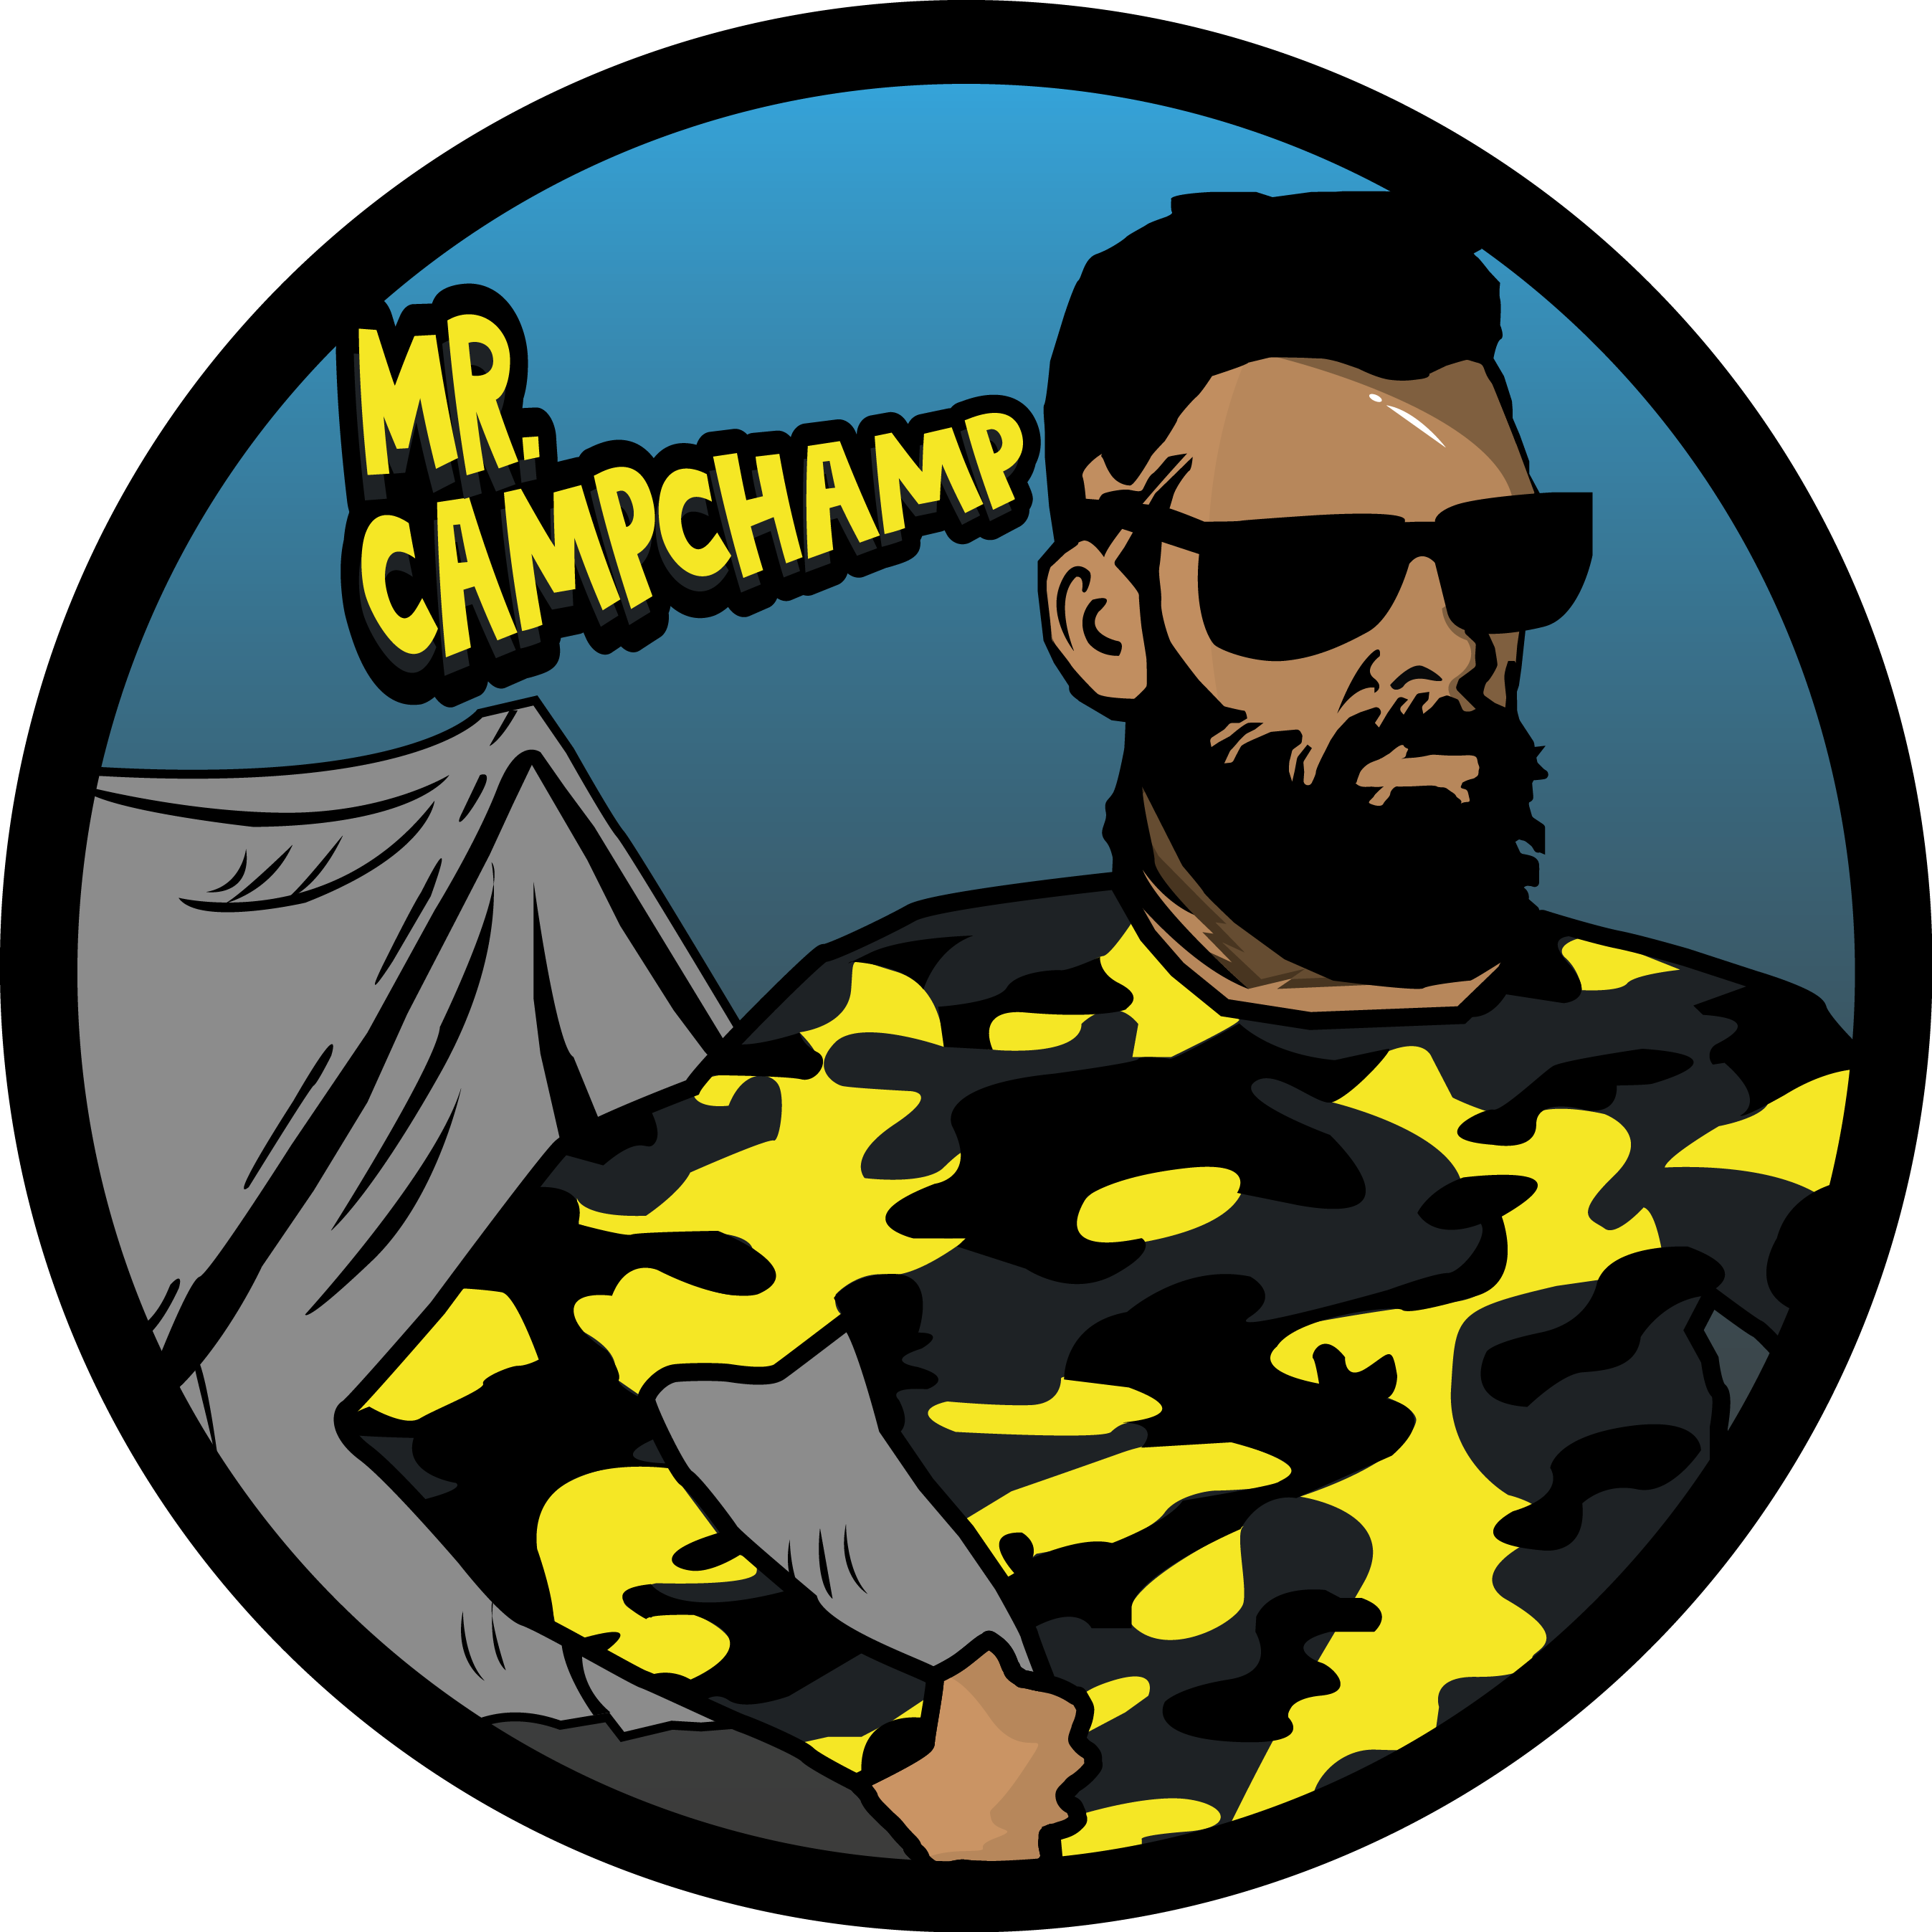 Mr. Campchamp